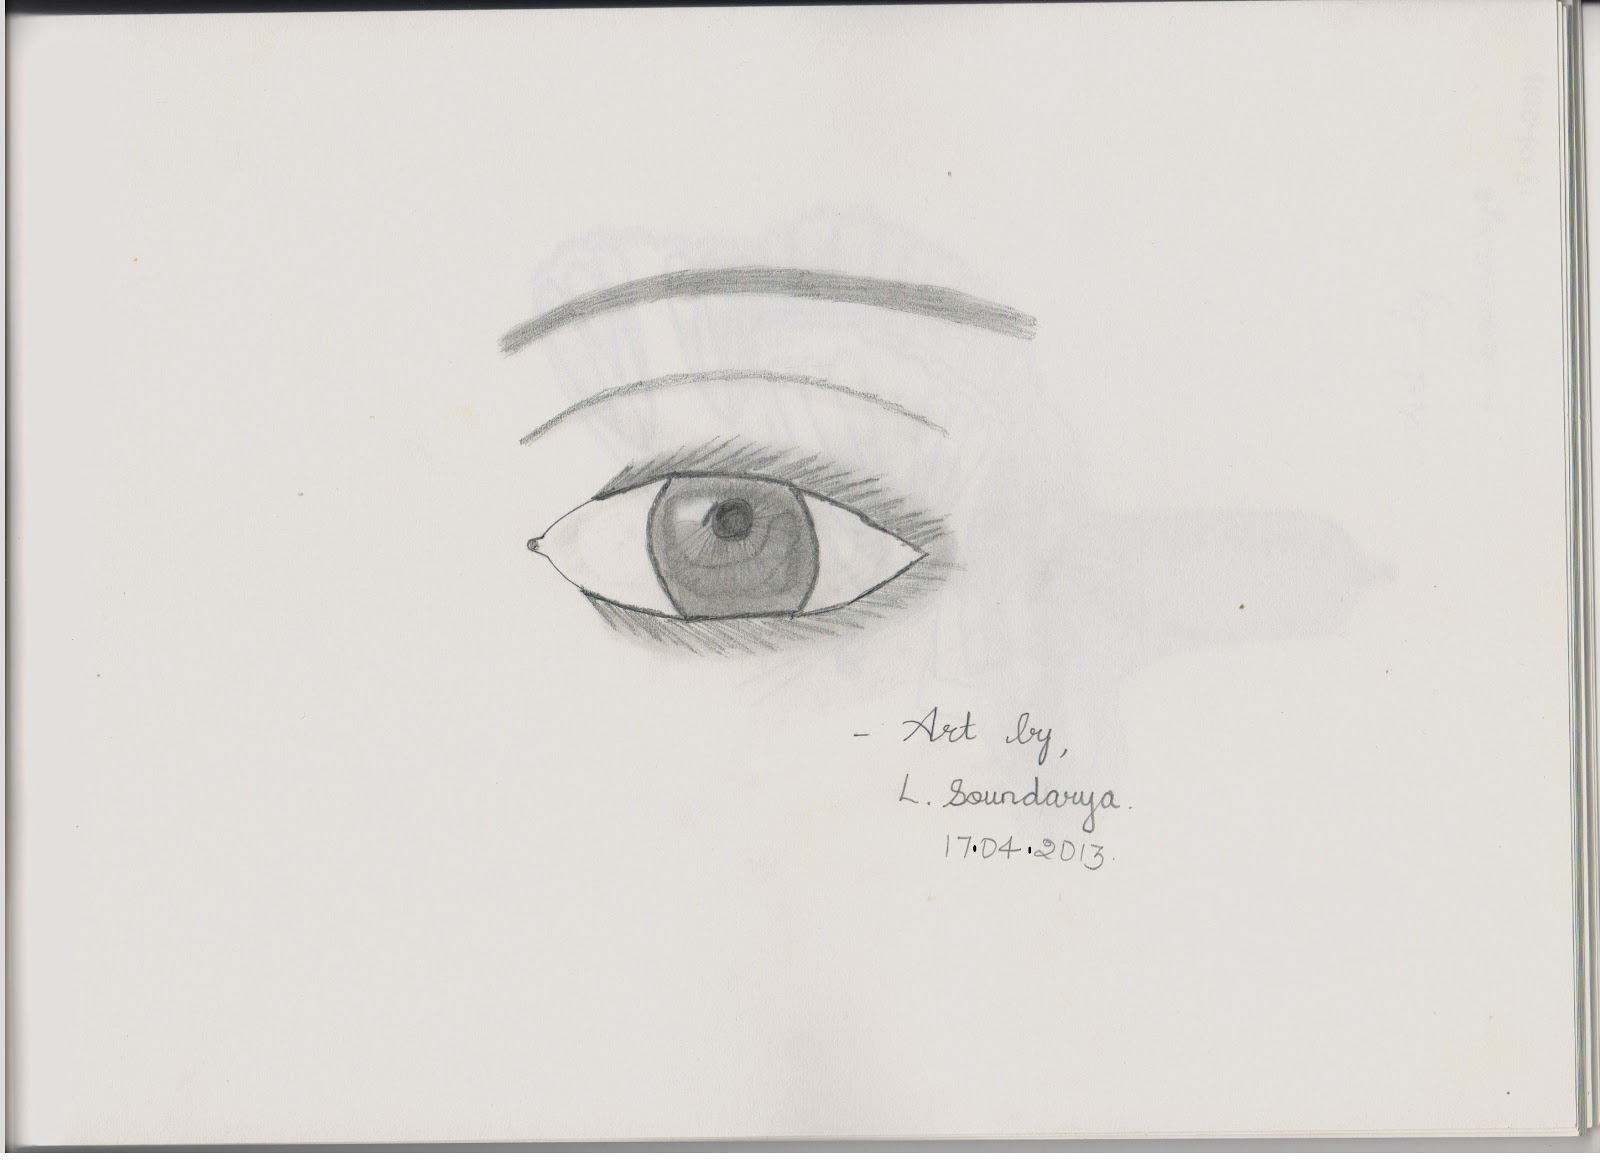 This is a very easy sketch of human eye for beginners